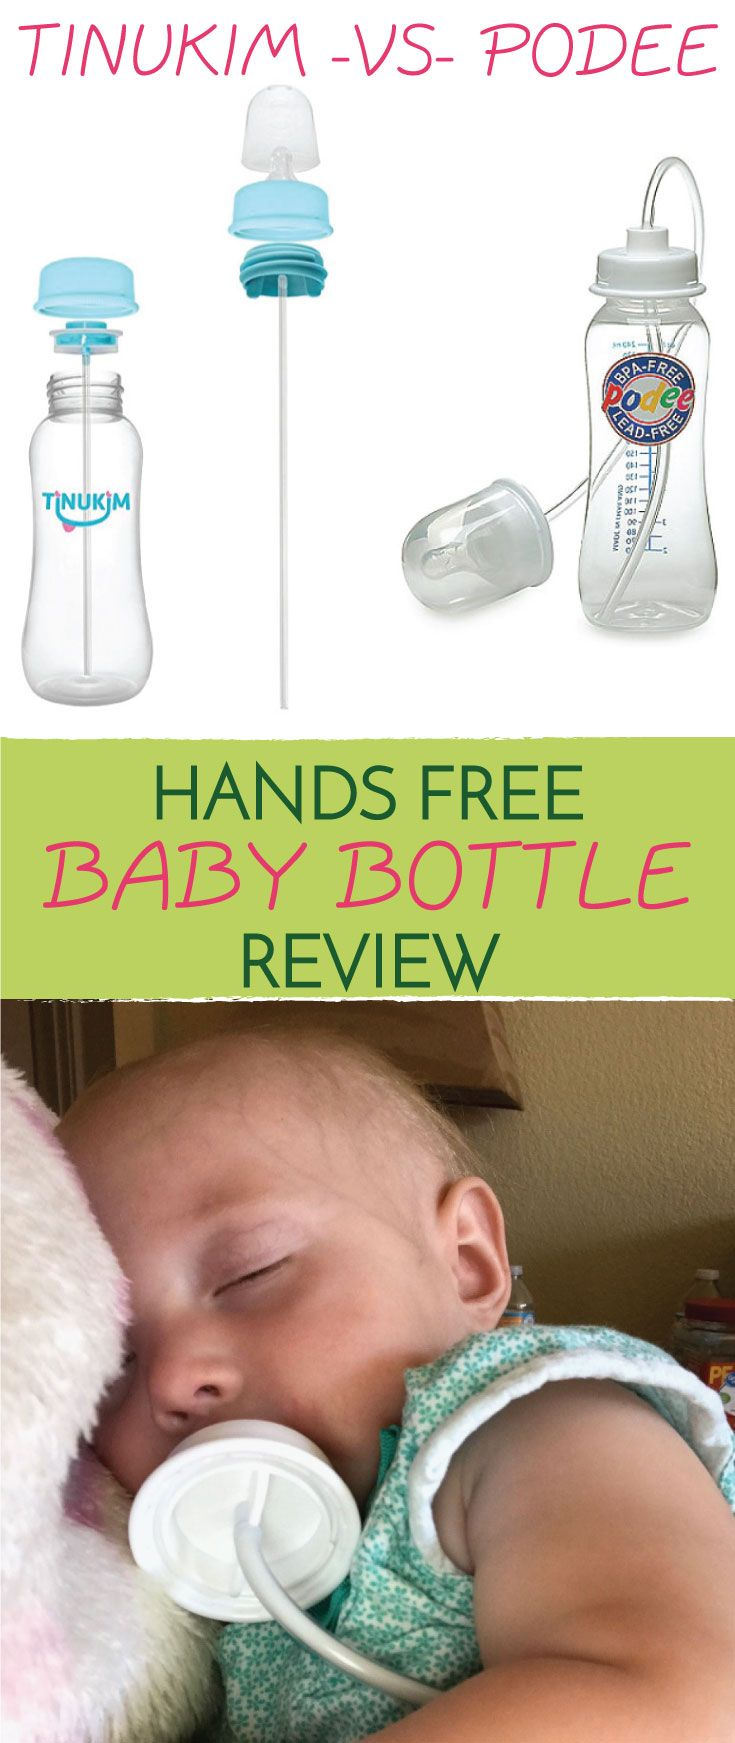 Handy-dandy #handsfree #babybottles were products that I wish I had found when we had our first daughter as she was very fussy in the car and a terrible sleeper. I have tried both the Tinukim Hands Free Baby Bottle – Anti-Colic Nursing System and the Podee Hands-Free Baby Bottle Feeding System and hands down have decided which one is the better product!